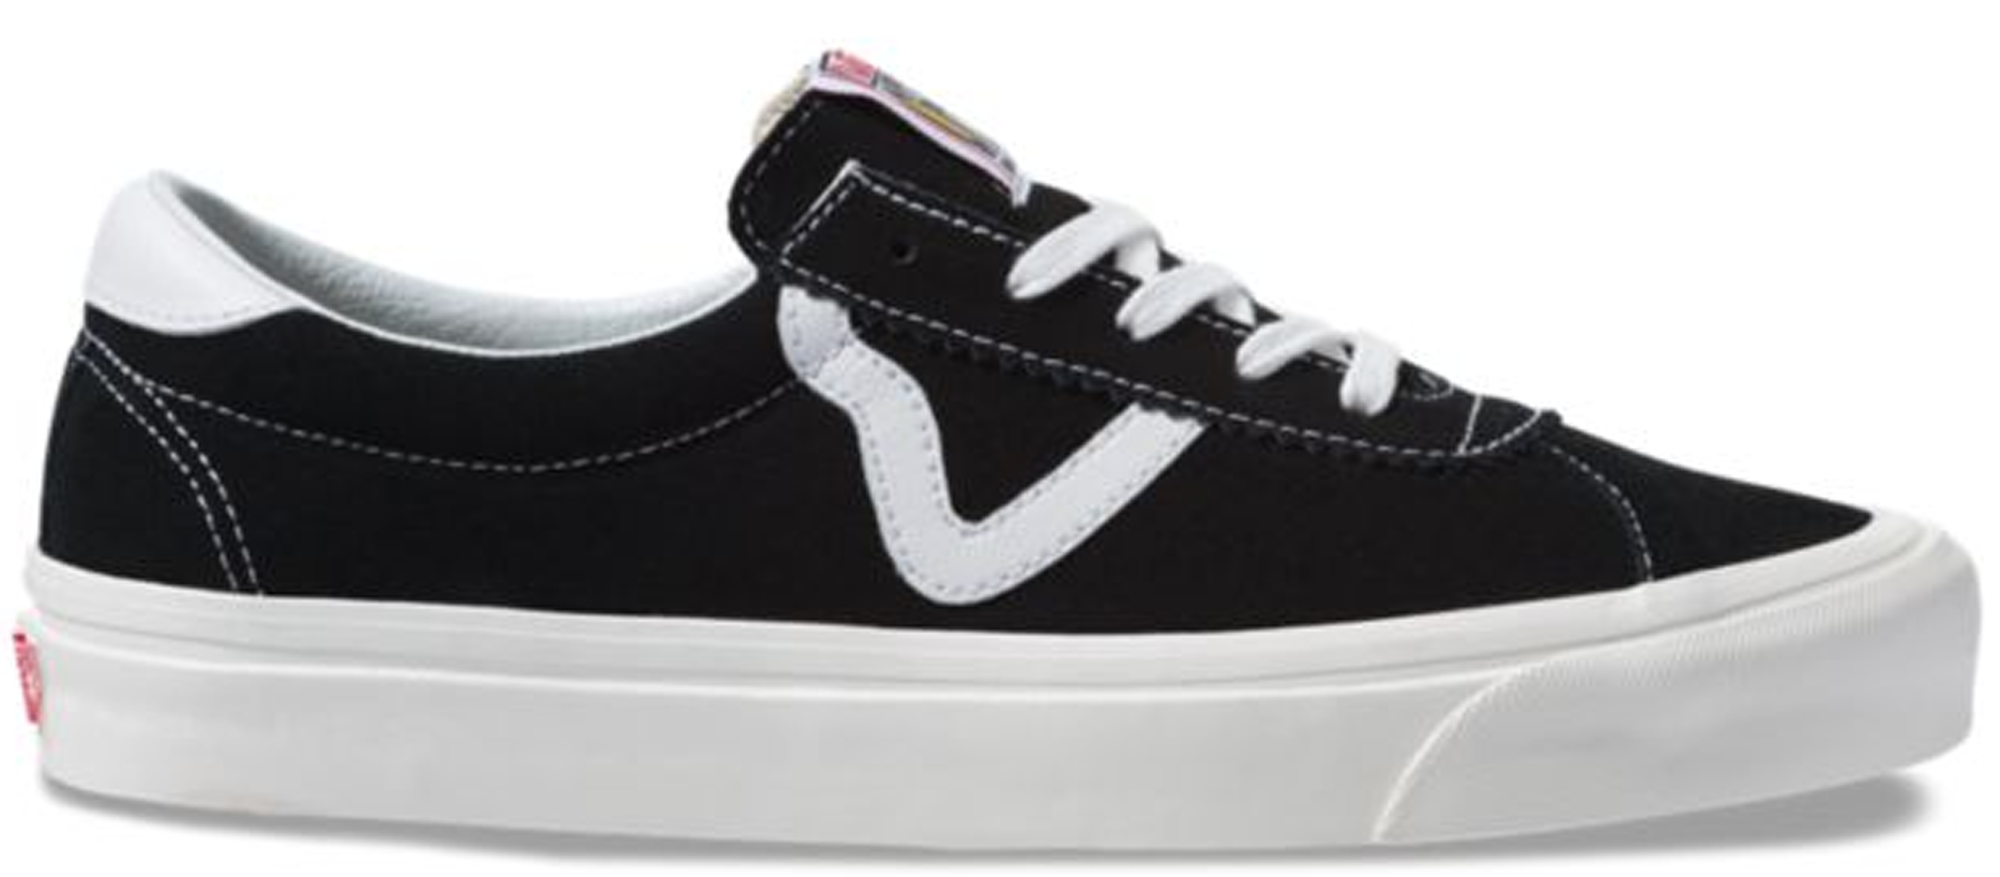 style 73 dx anaheim factory sneakers